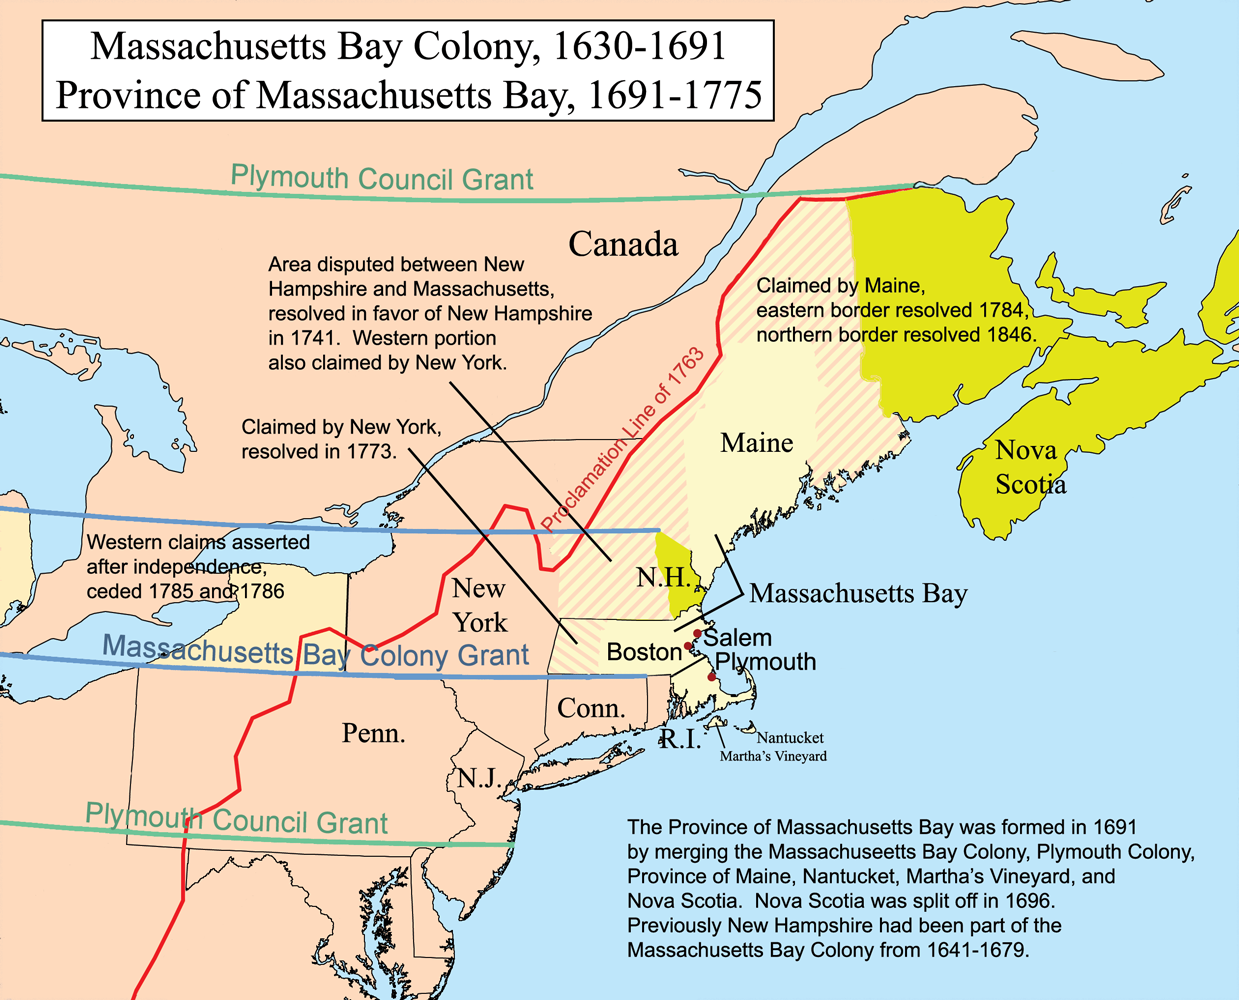 Differences between the Chesapeake Bay and New England Colonies